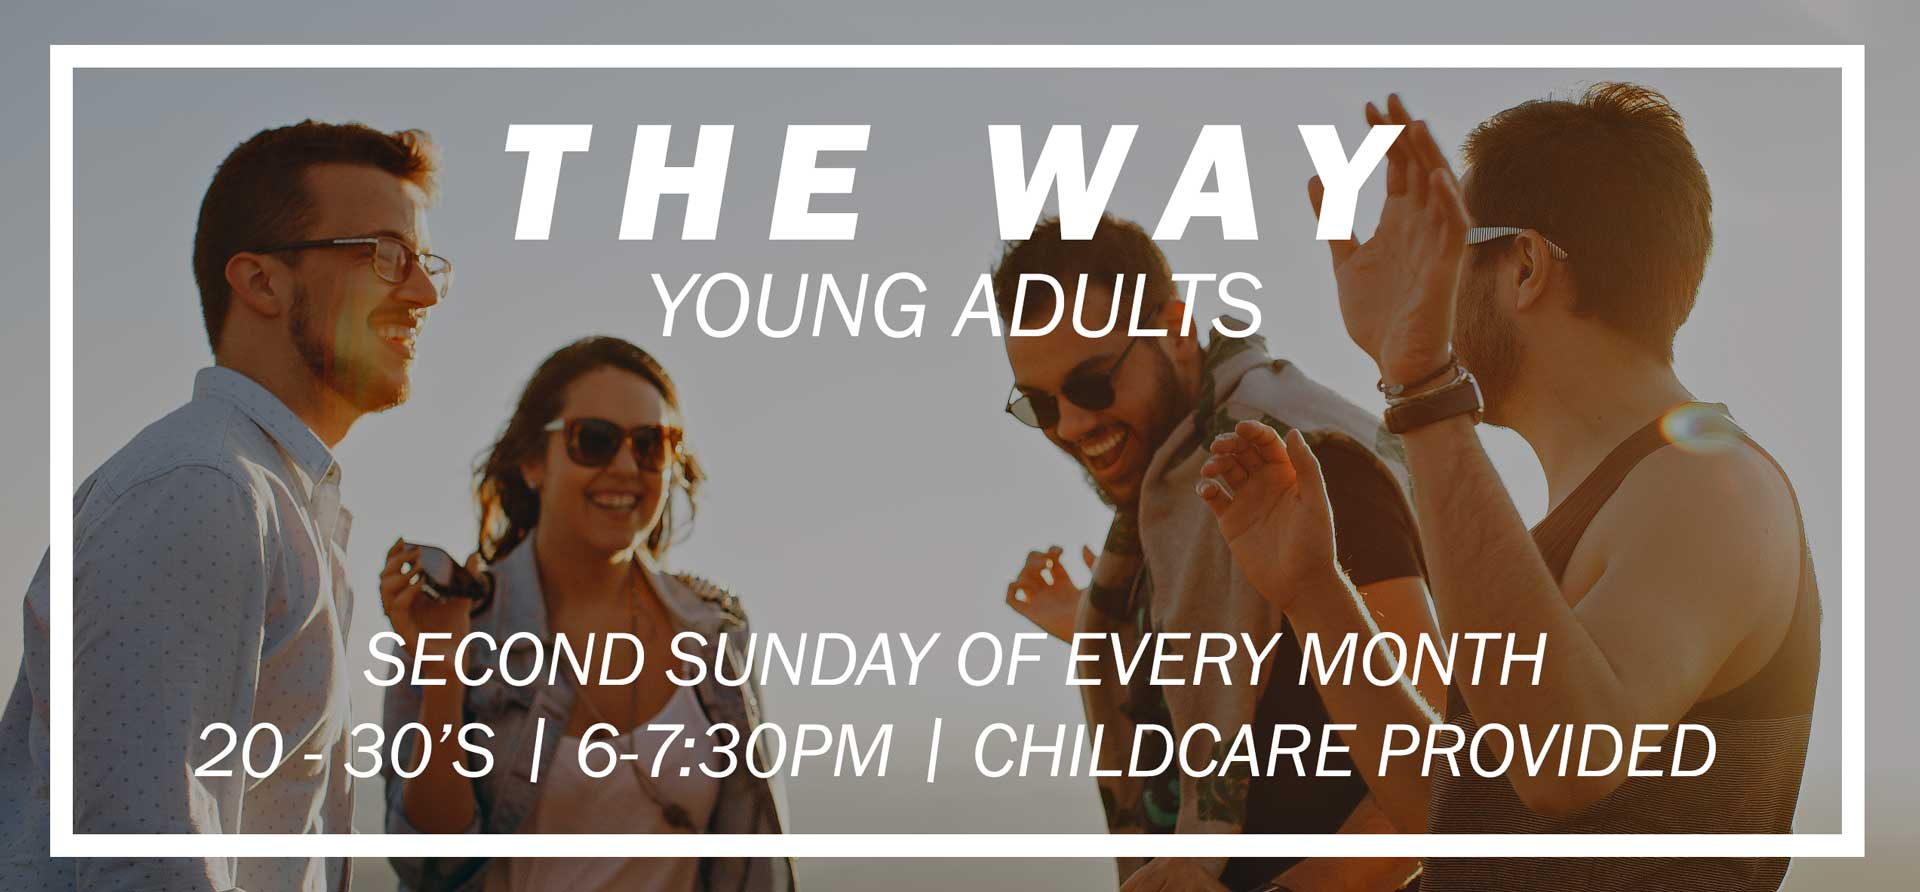 The Way - Young Adults